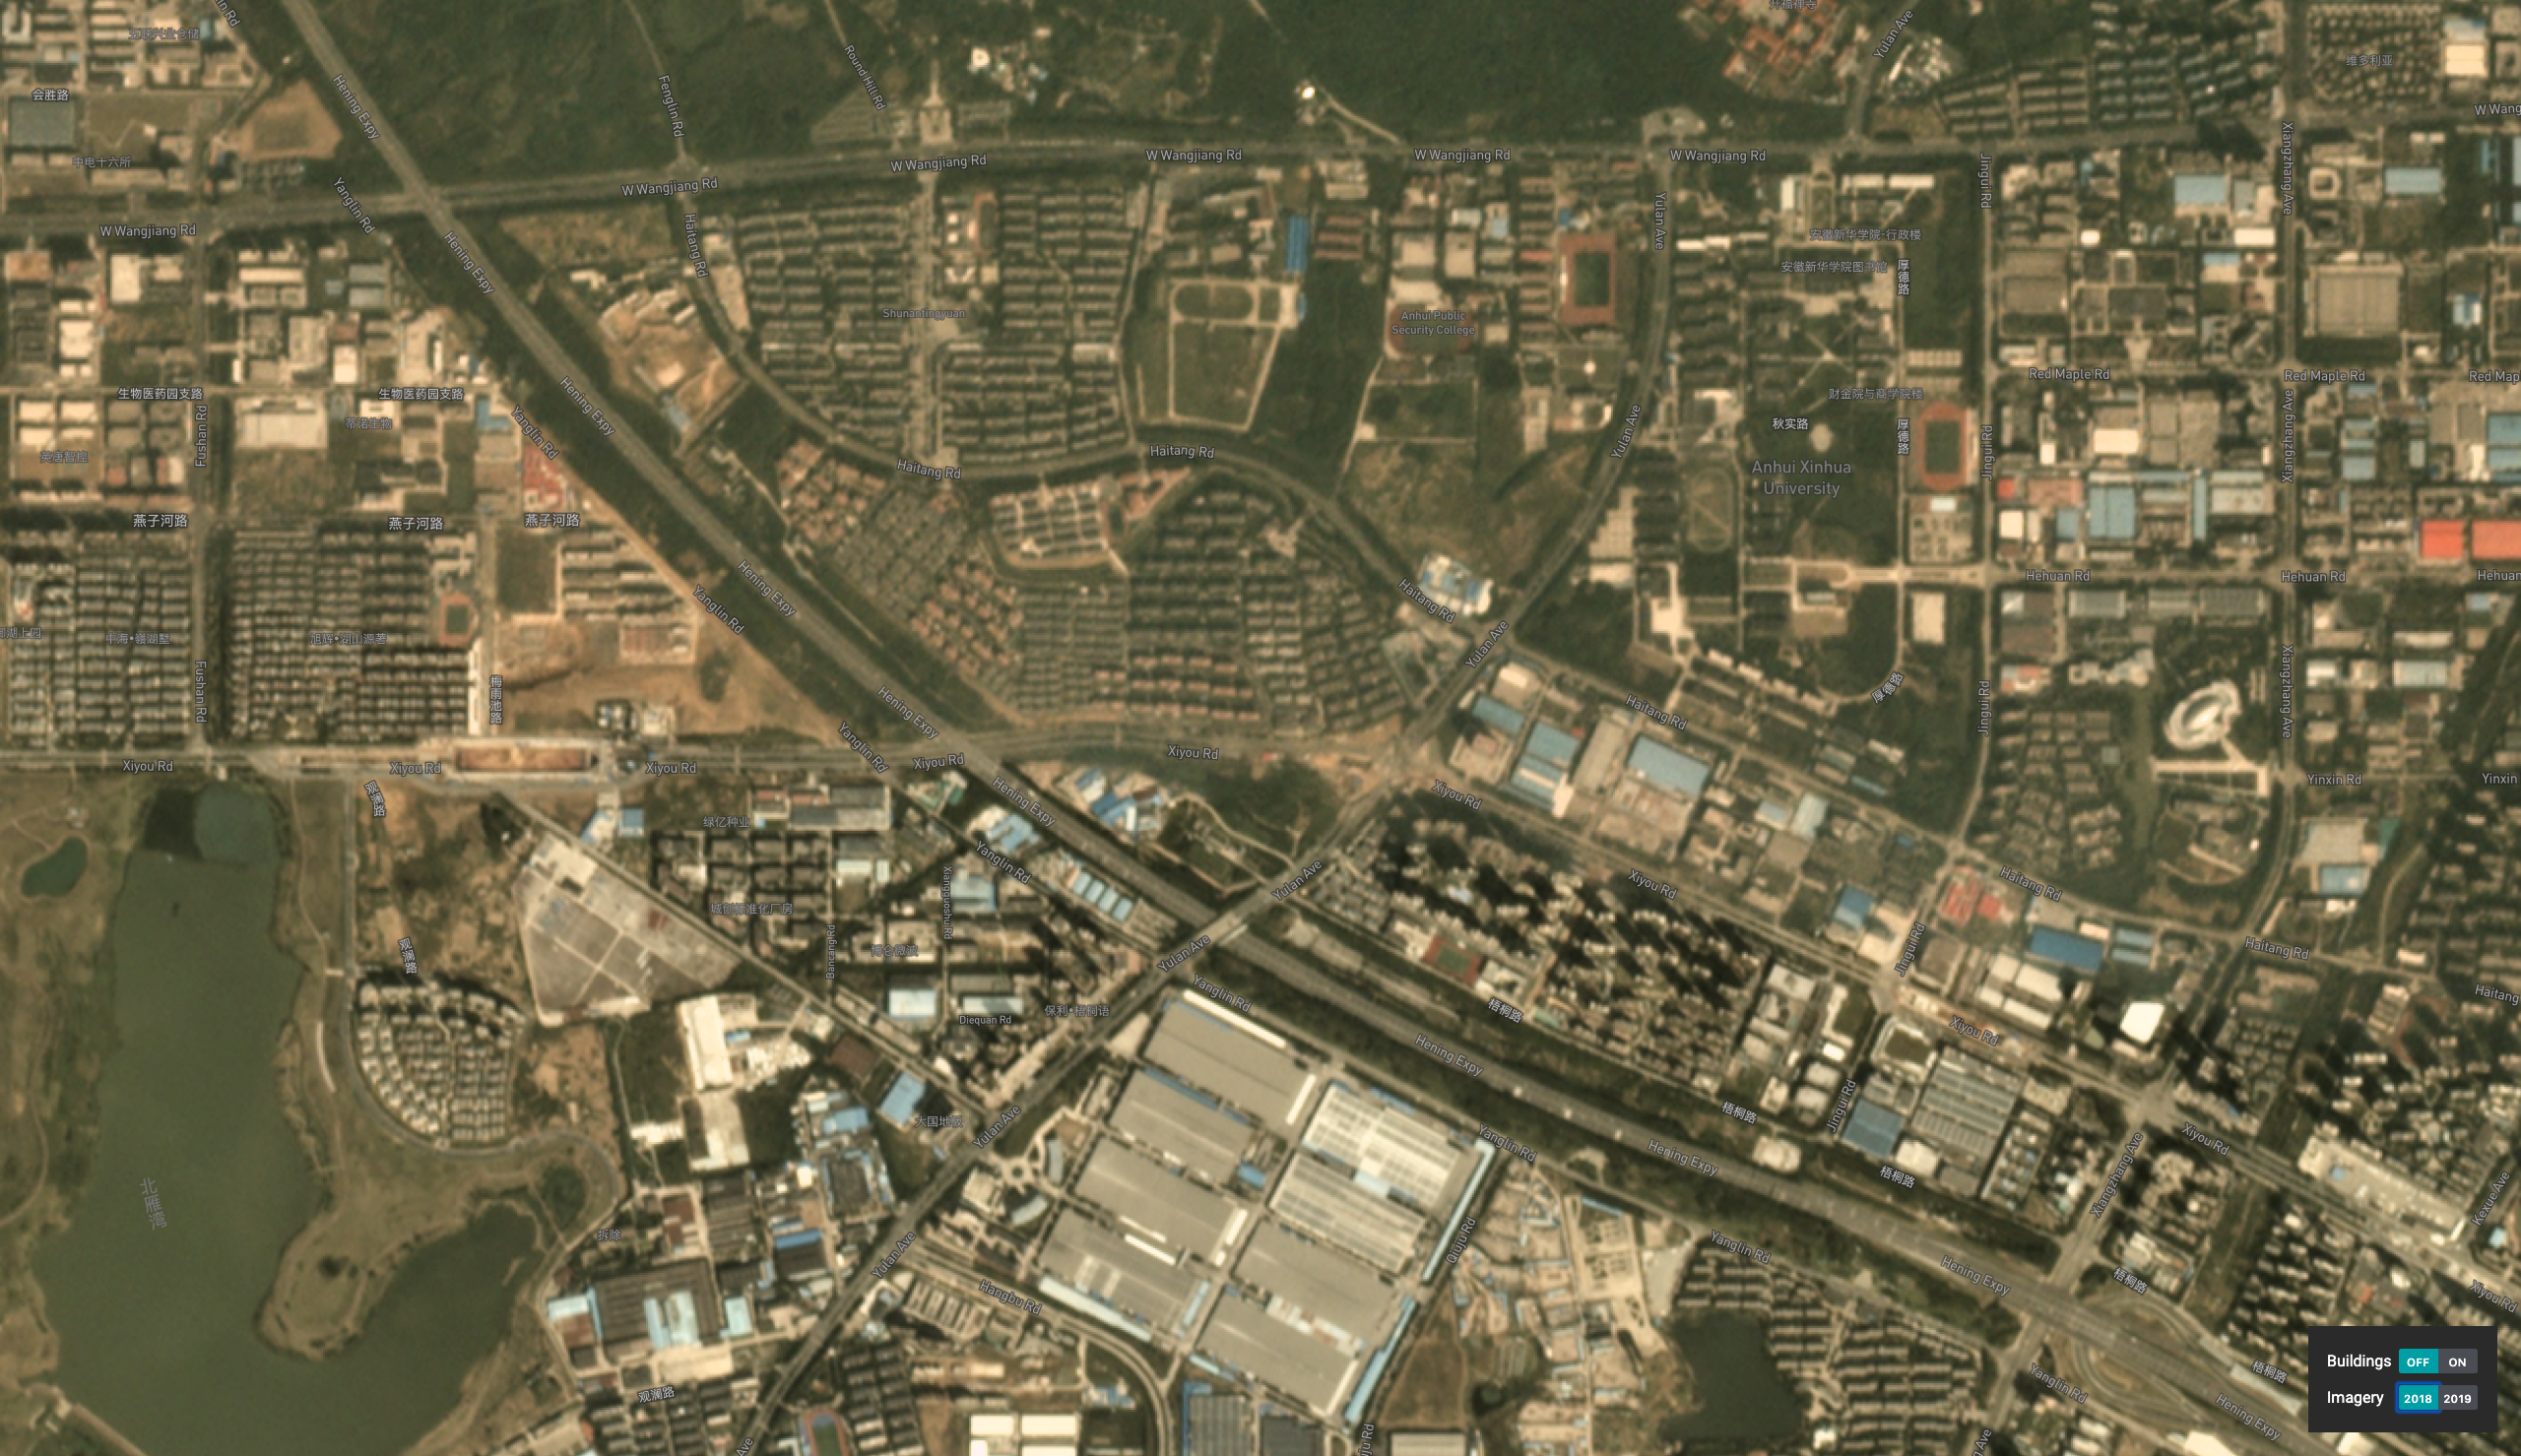 Imagery of the fast growing city of Hefei, China indicating an outward expansion with accumulated area that has been built up; the built up area is shown in yellow on the visual basemap // (c) 2019, Planet Labs Inc. All Rights Reserved.